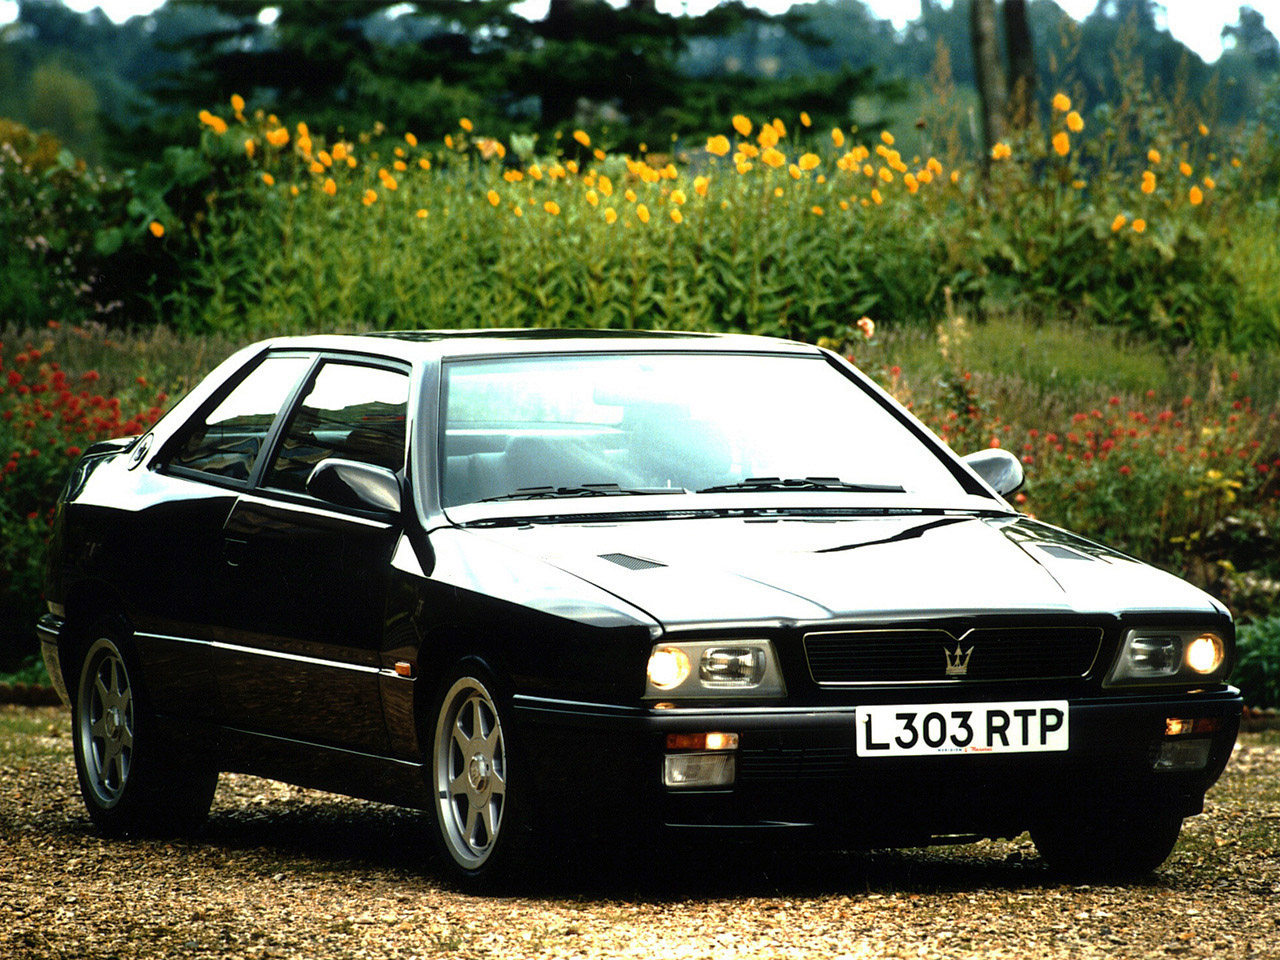 1996 Maserati Ghibli ii - pictures, information and specs ...